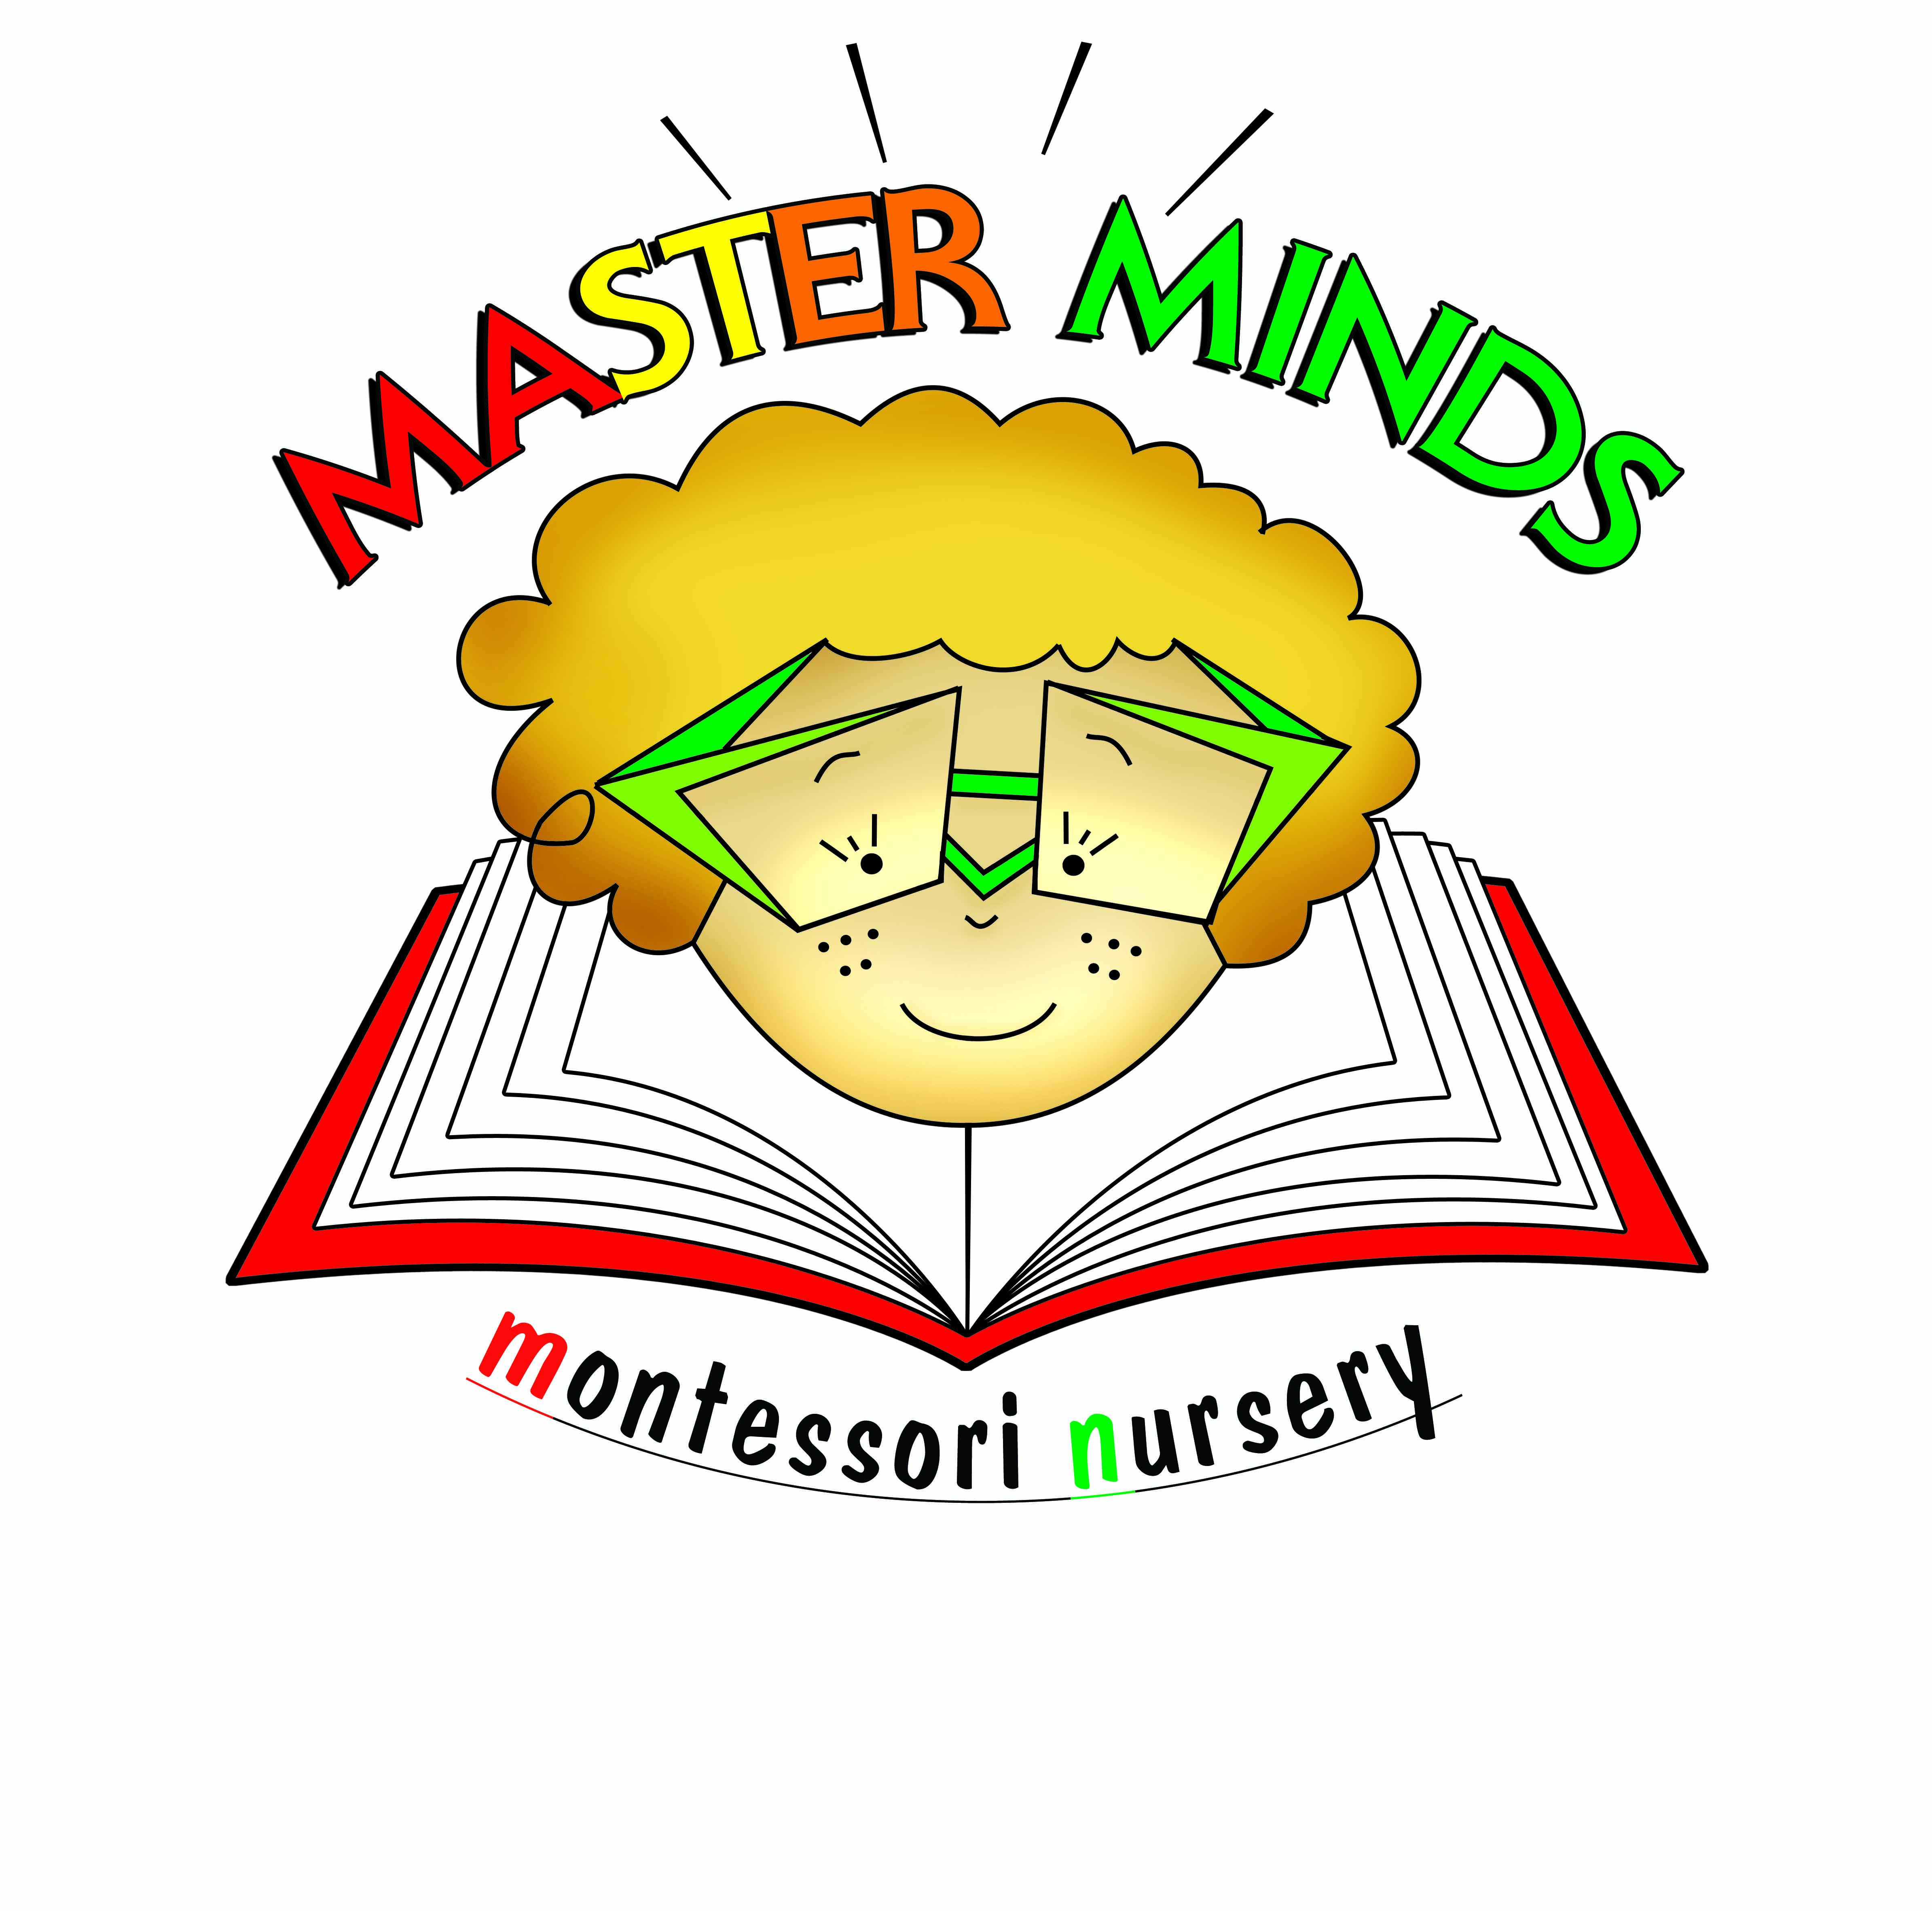 Mastermind clipart 6 » Clipart Station.